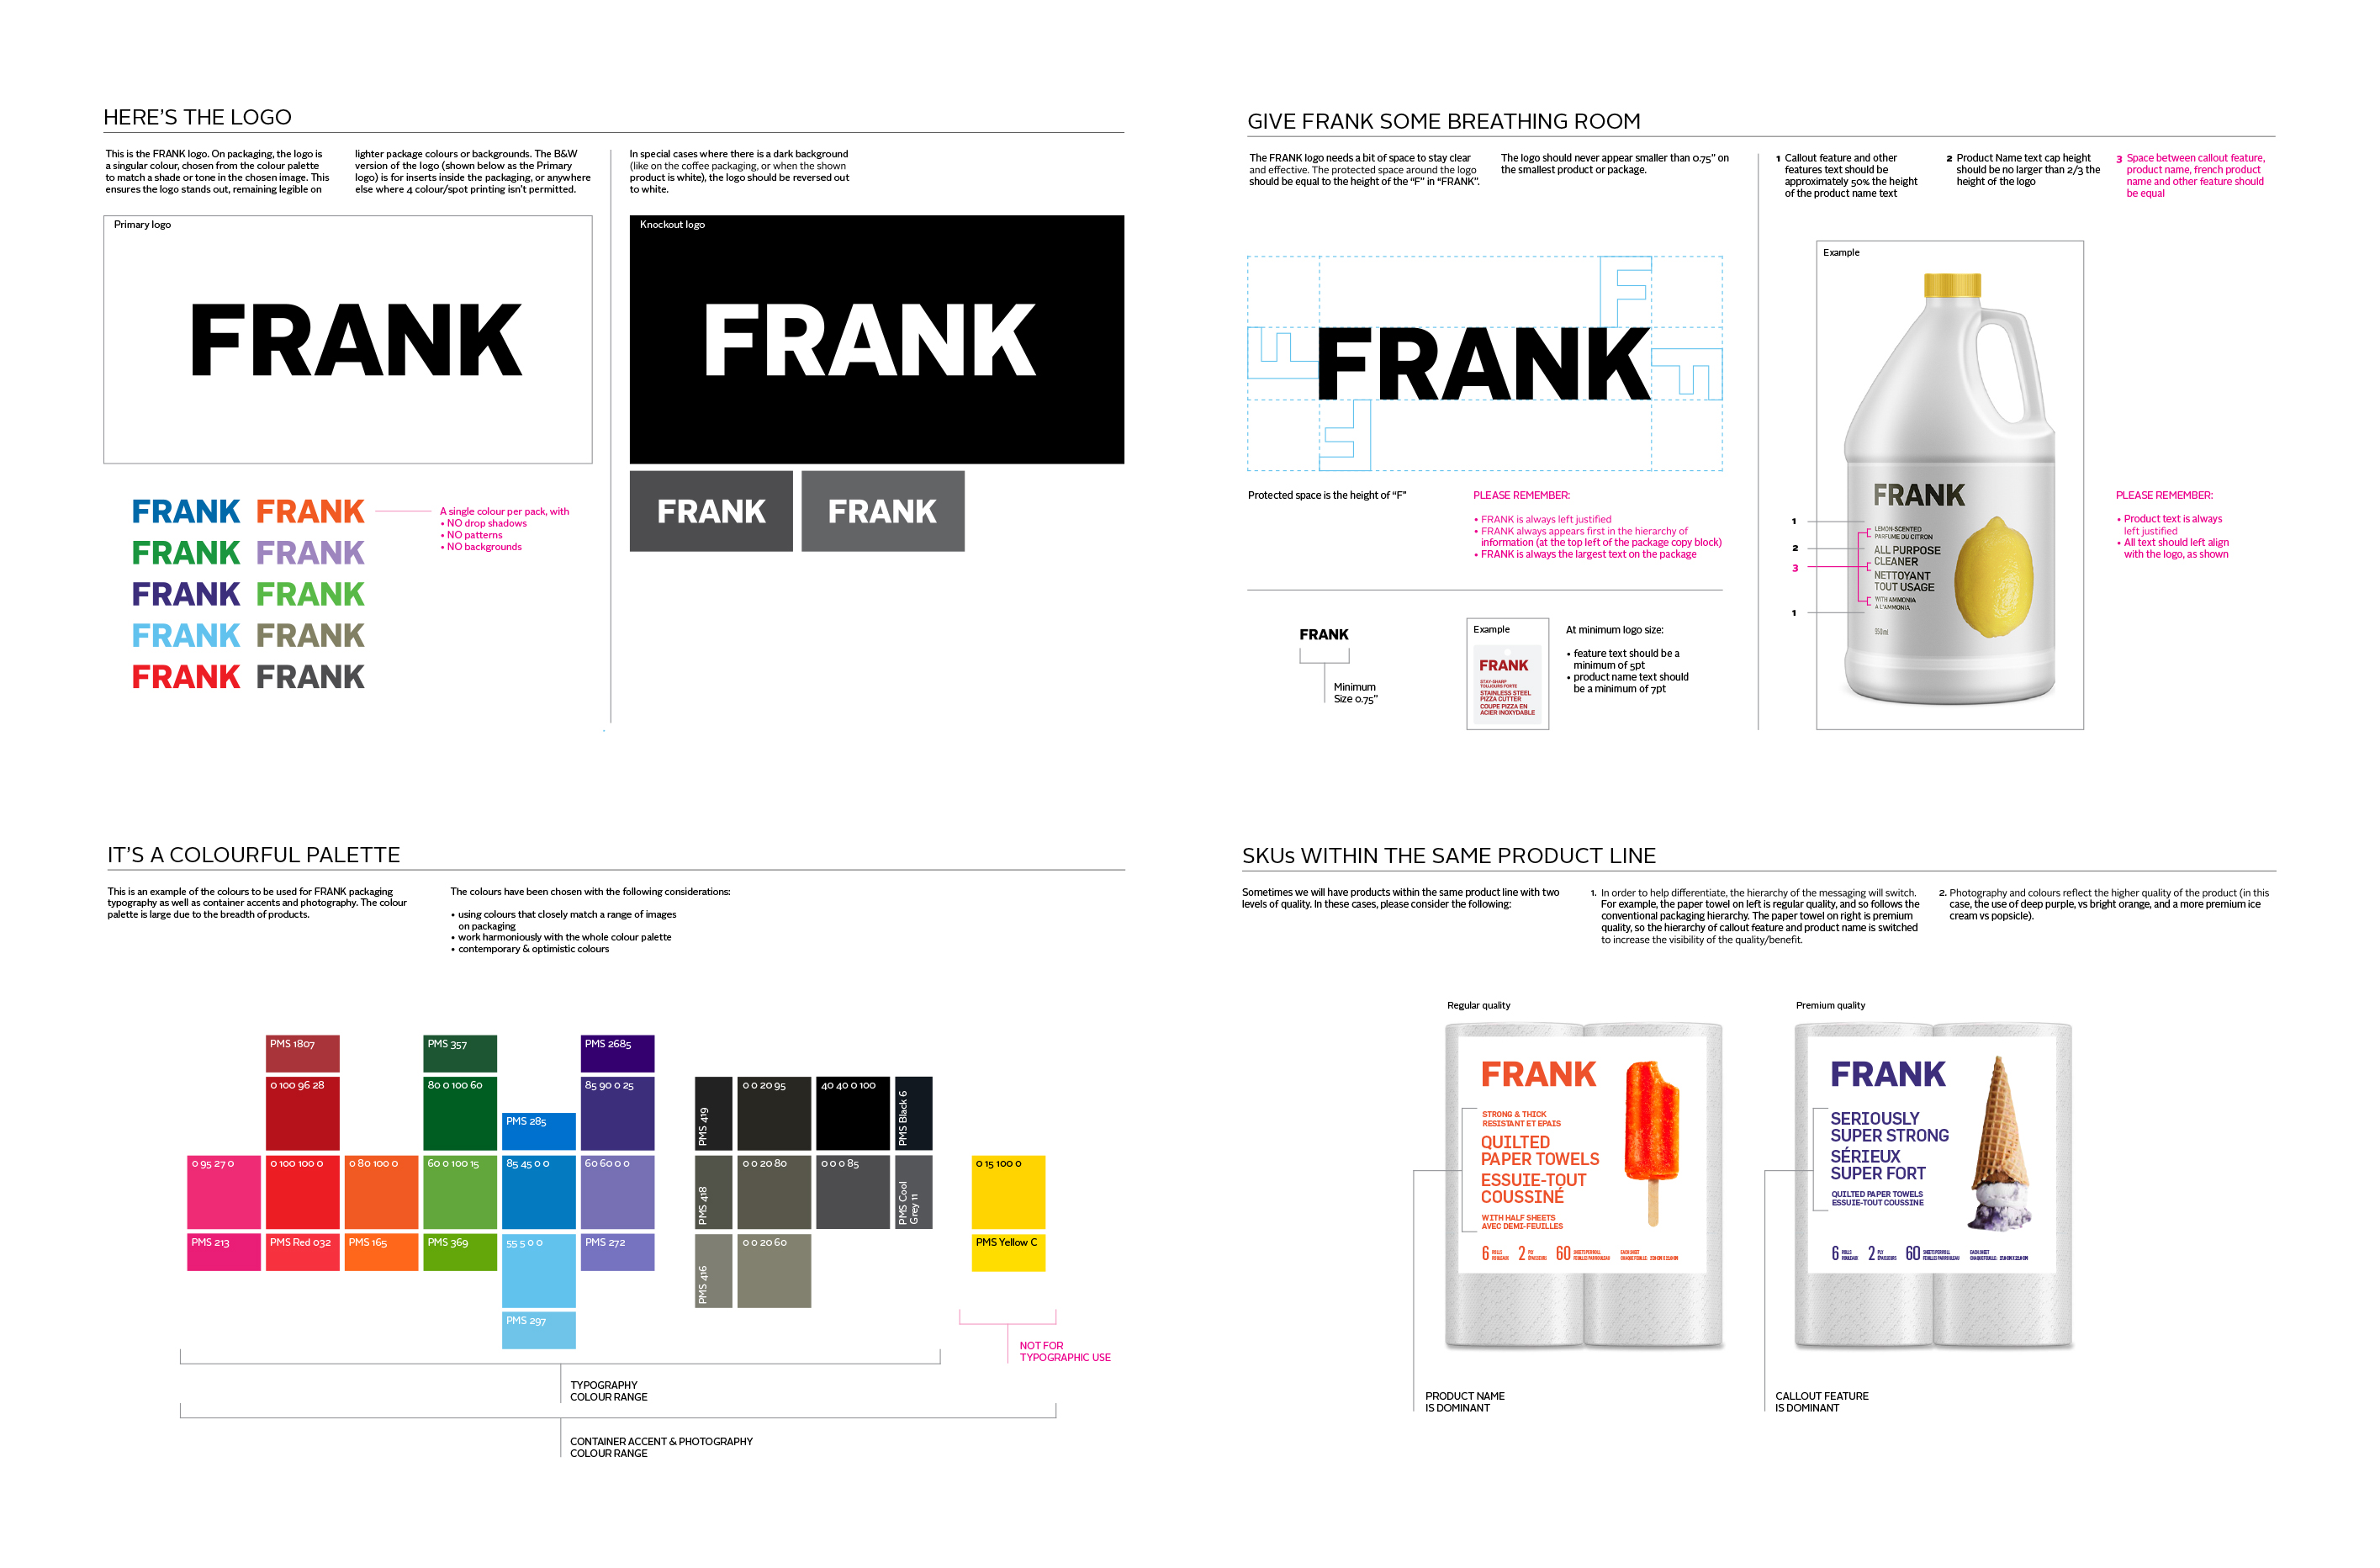 Frank Brand Guidelines